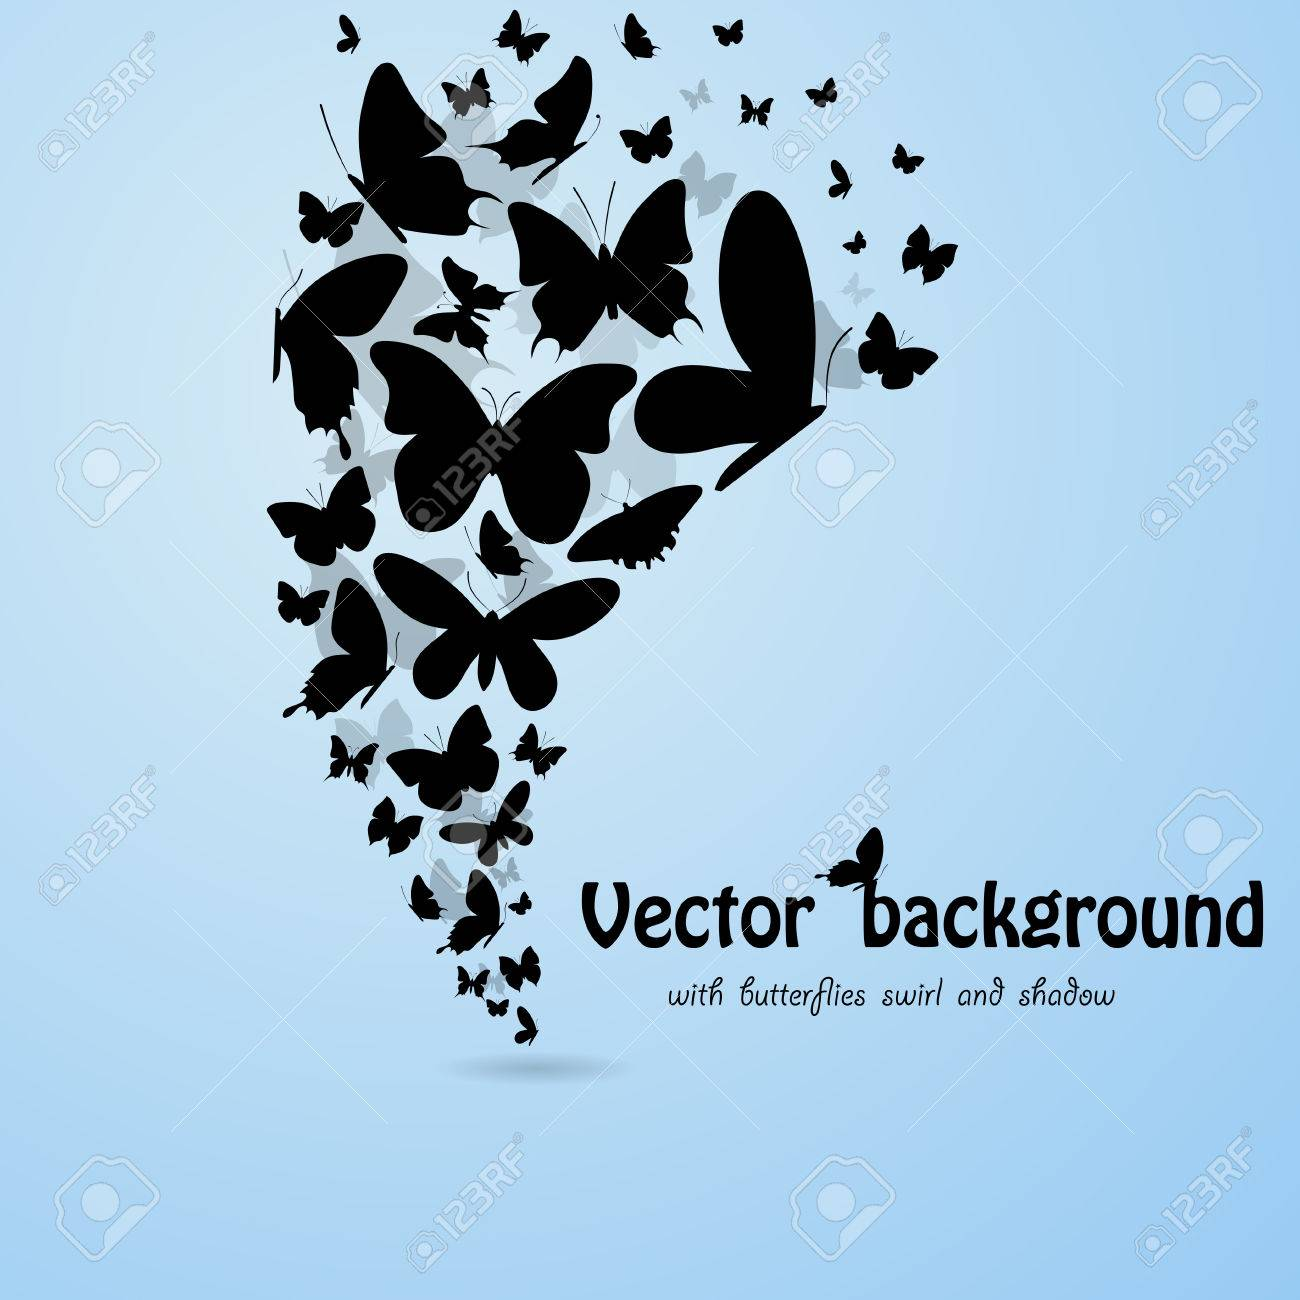 Blue backgroound with butterflies silhouettes. eps10 Stock Vector - 23975165